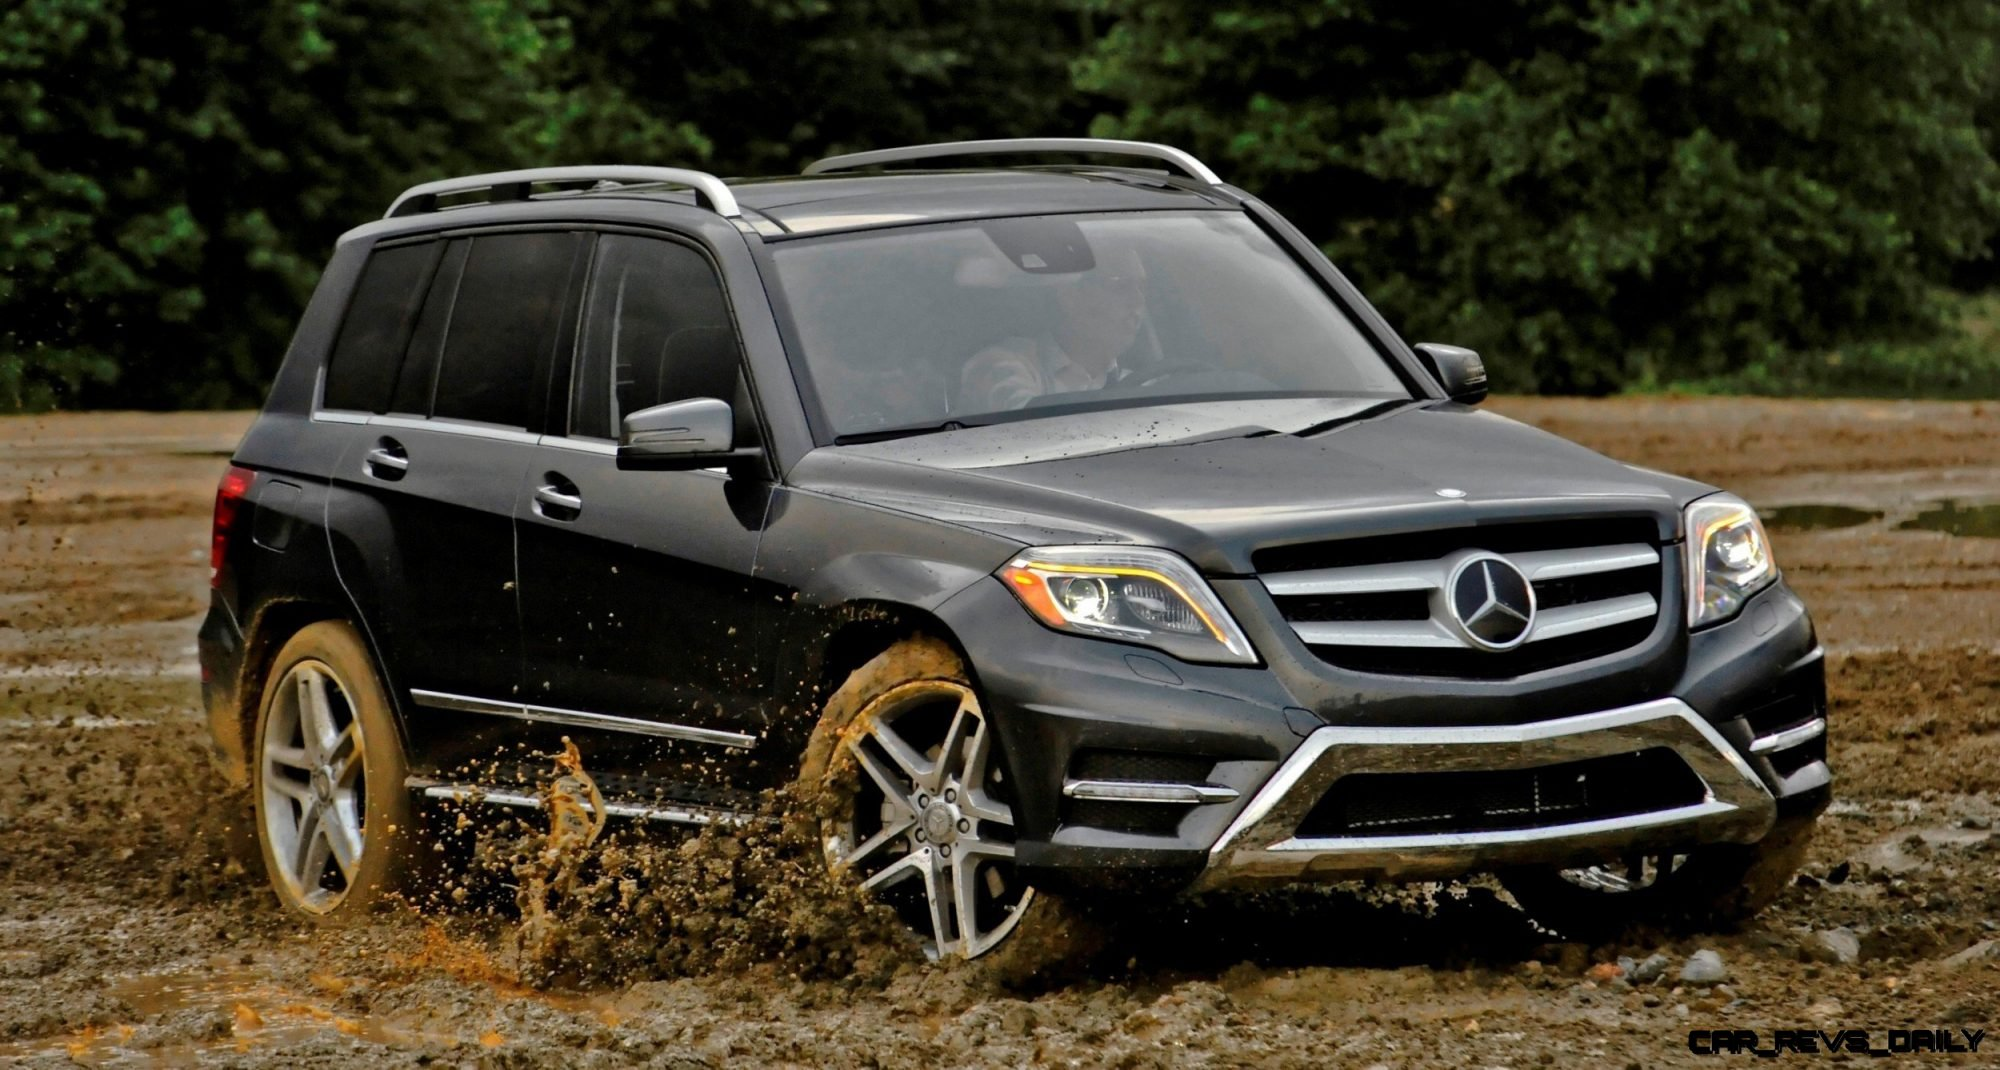 Glk250 diesel joins glk350 from 37 000 buyers guide to for Mercedes benz glk350 amg